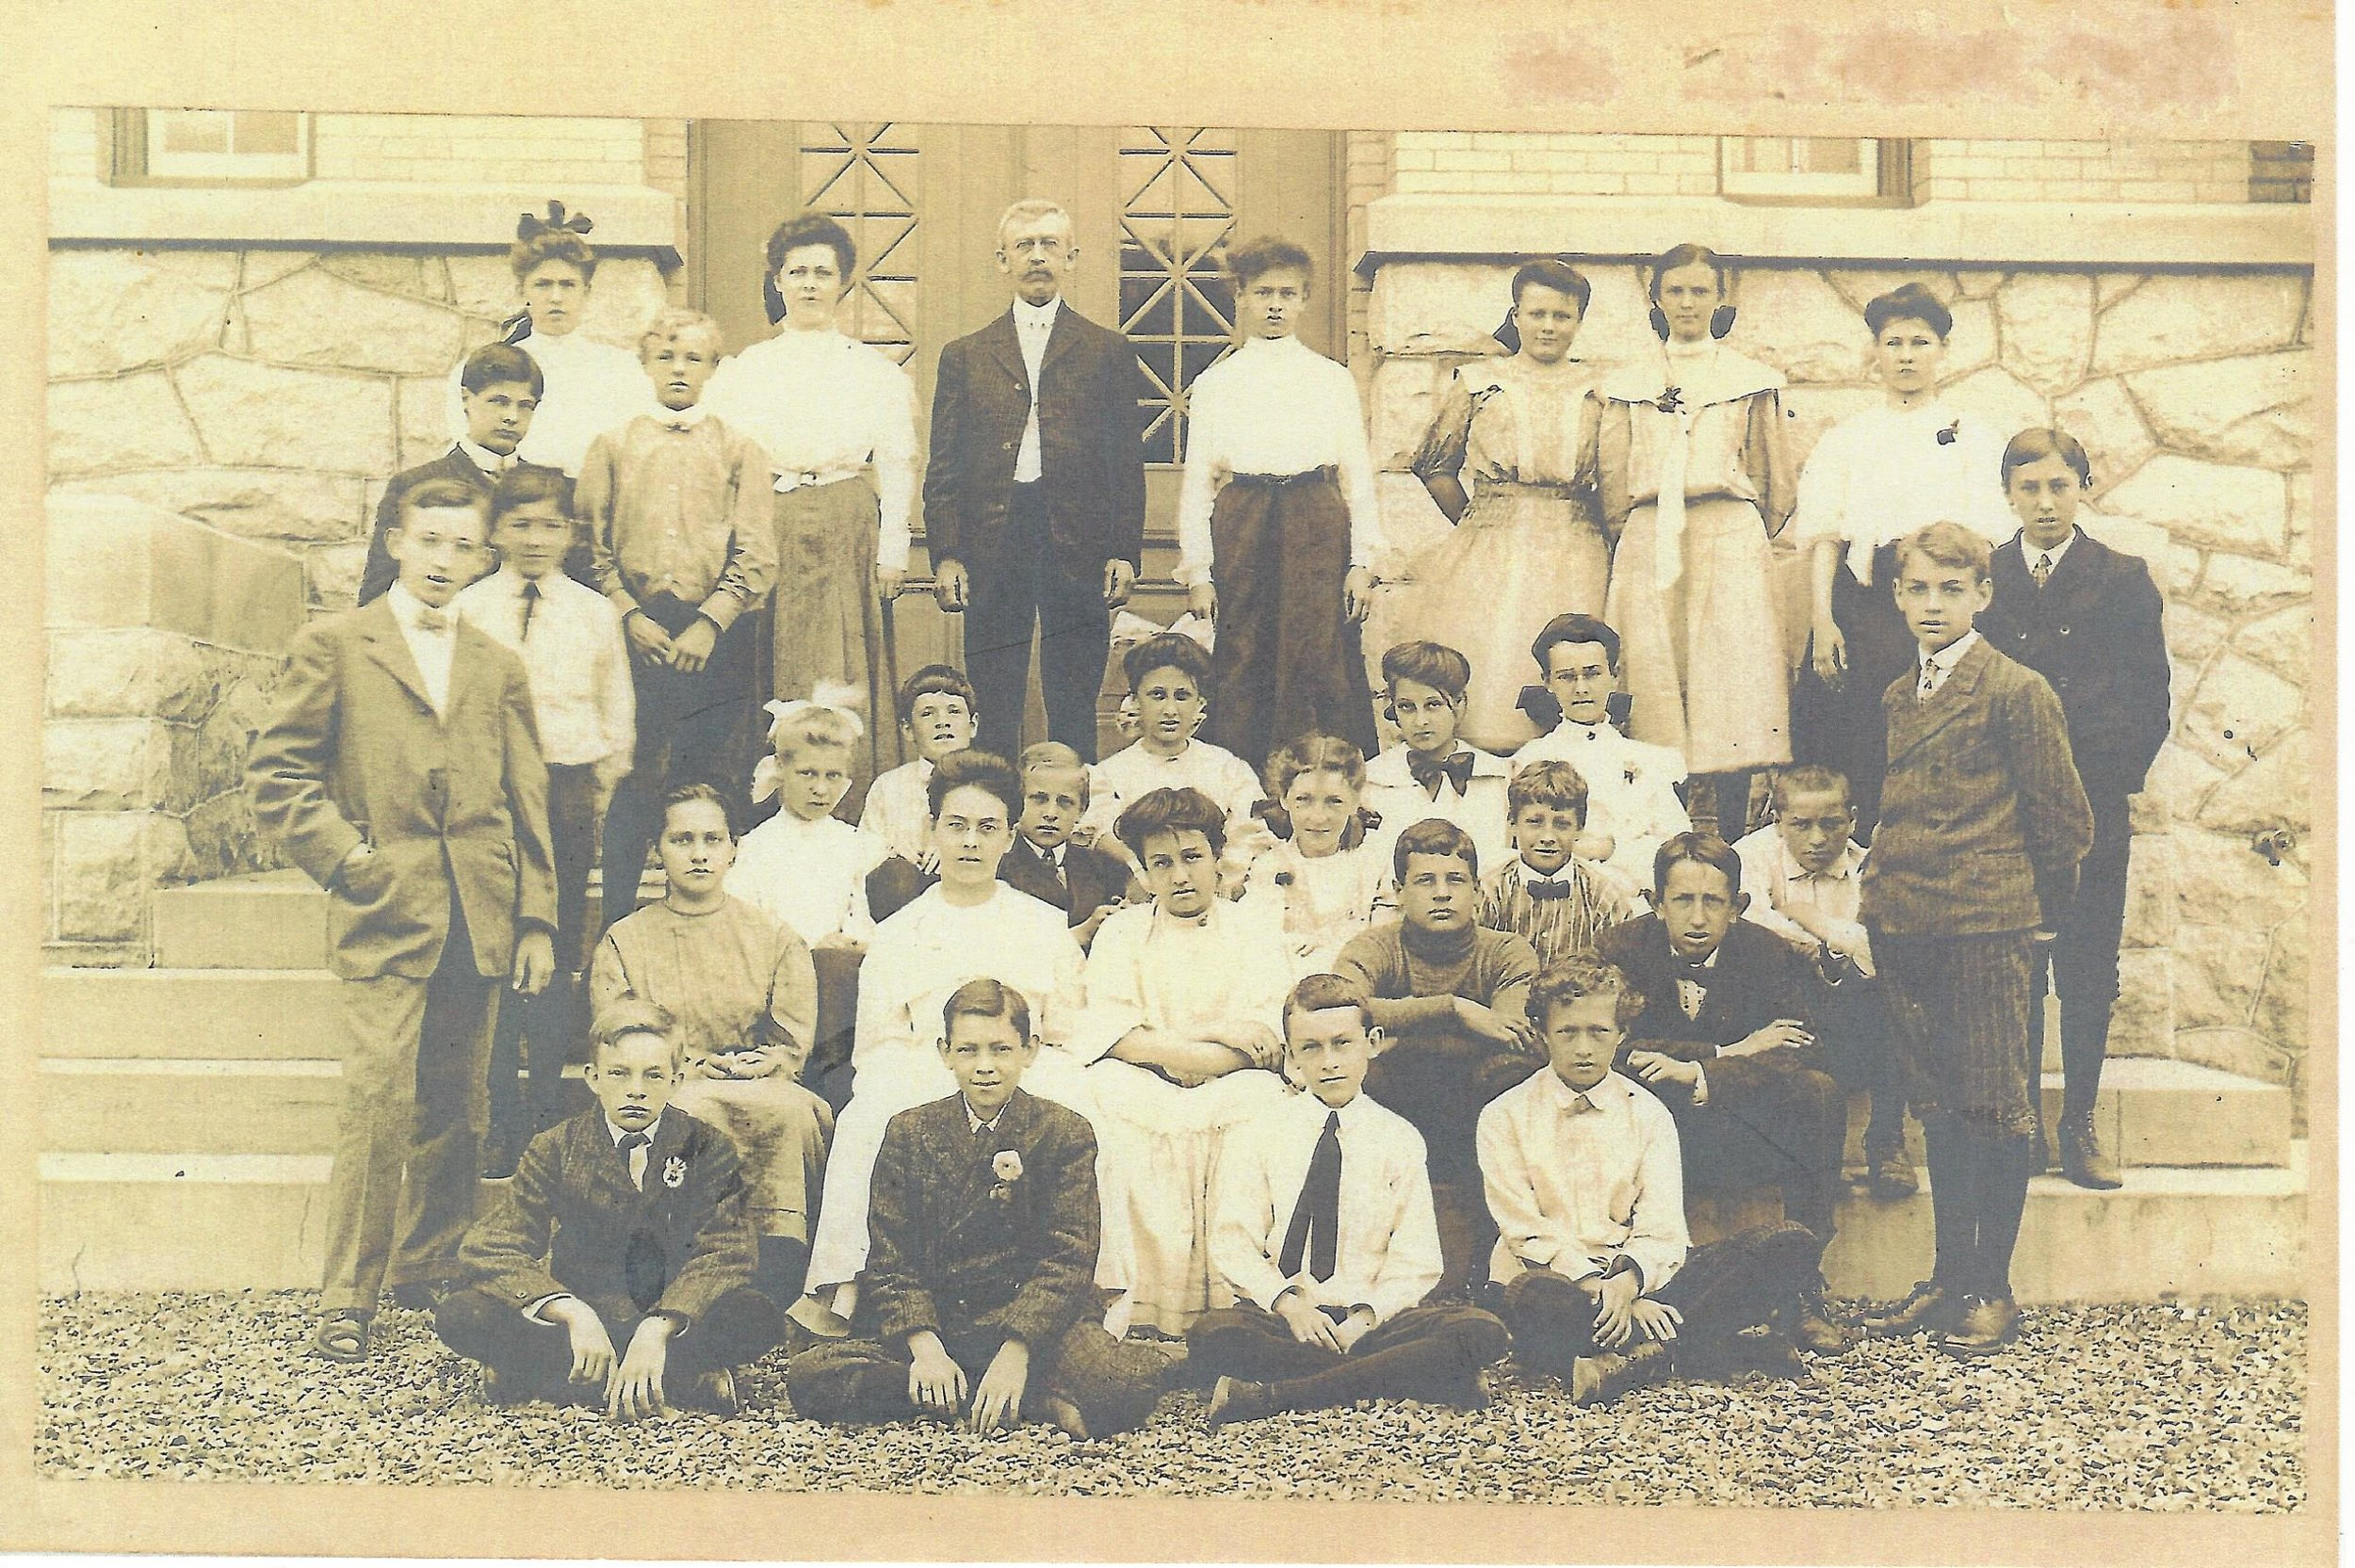 Pupils with their teachers and principal, Lester Rosenkranz, Broad Avenue Elementary School 1907